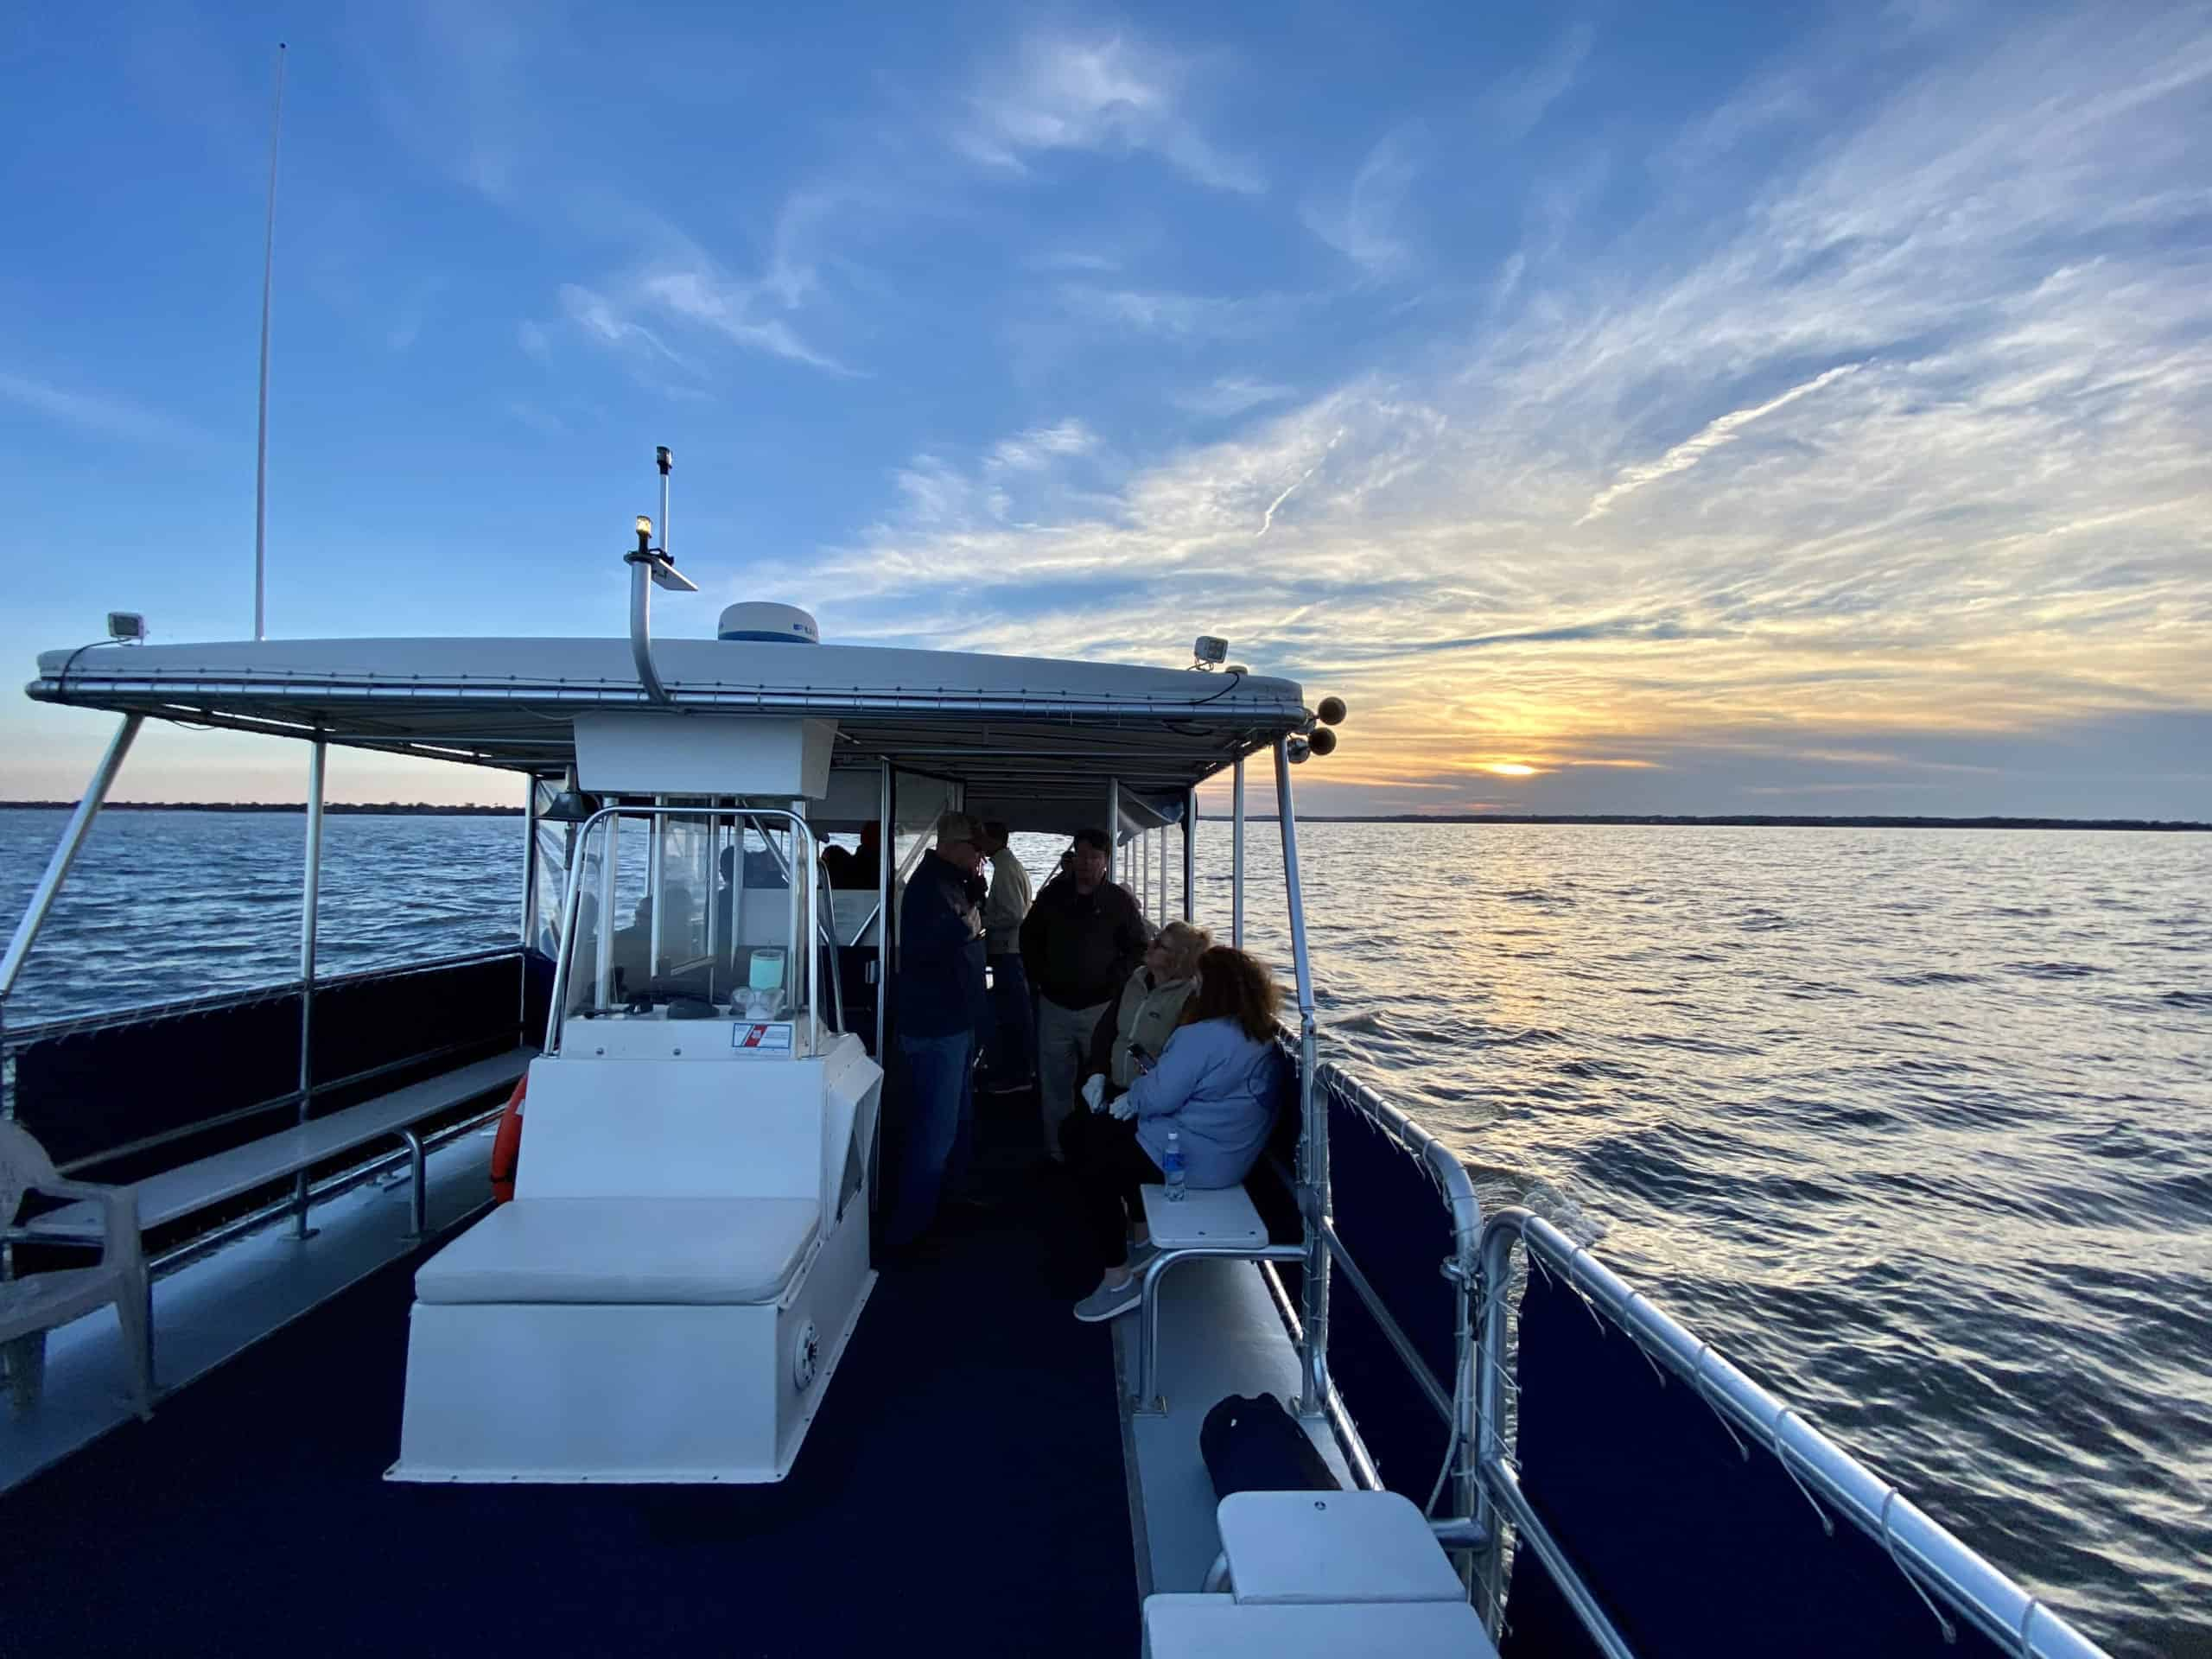 Sun setting on the water behind the boat. Private charter Charleston, SC